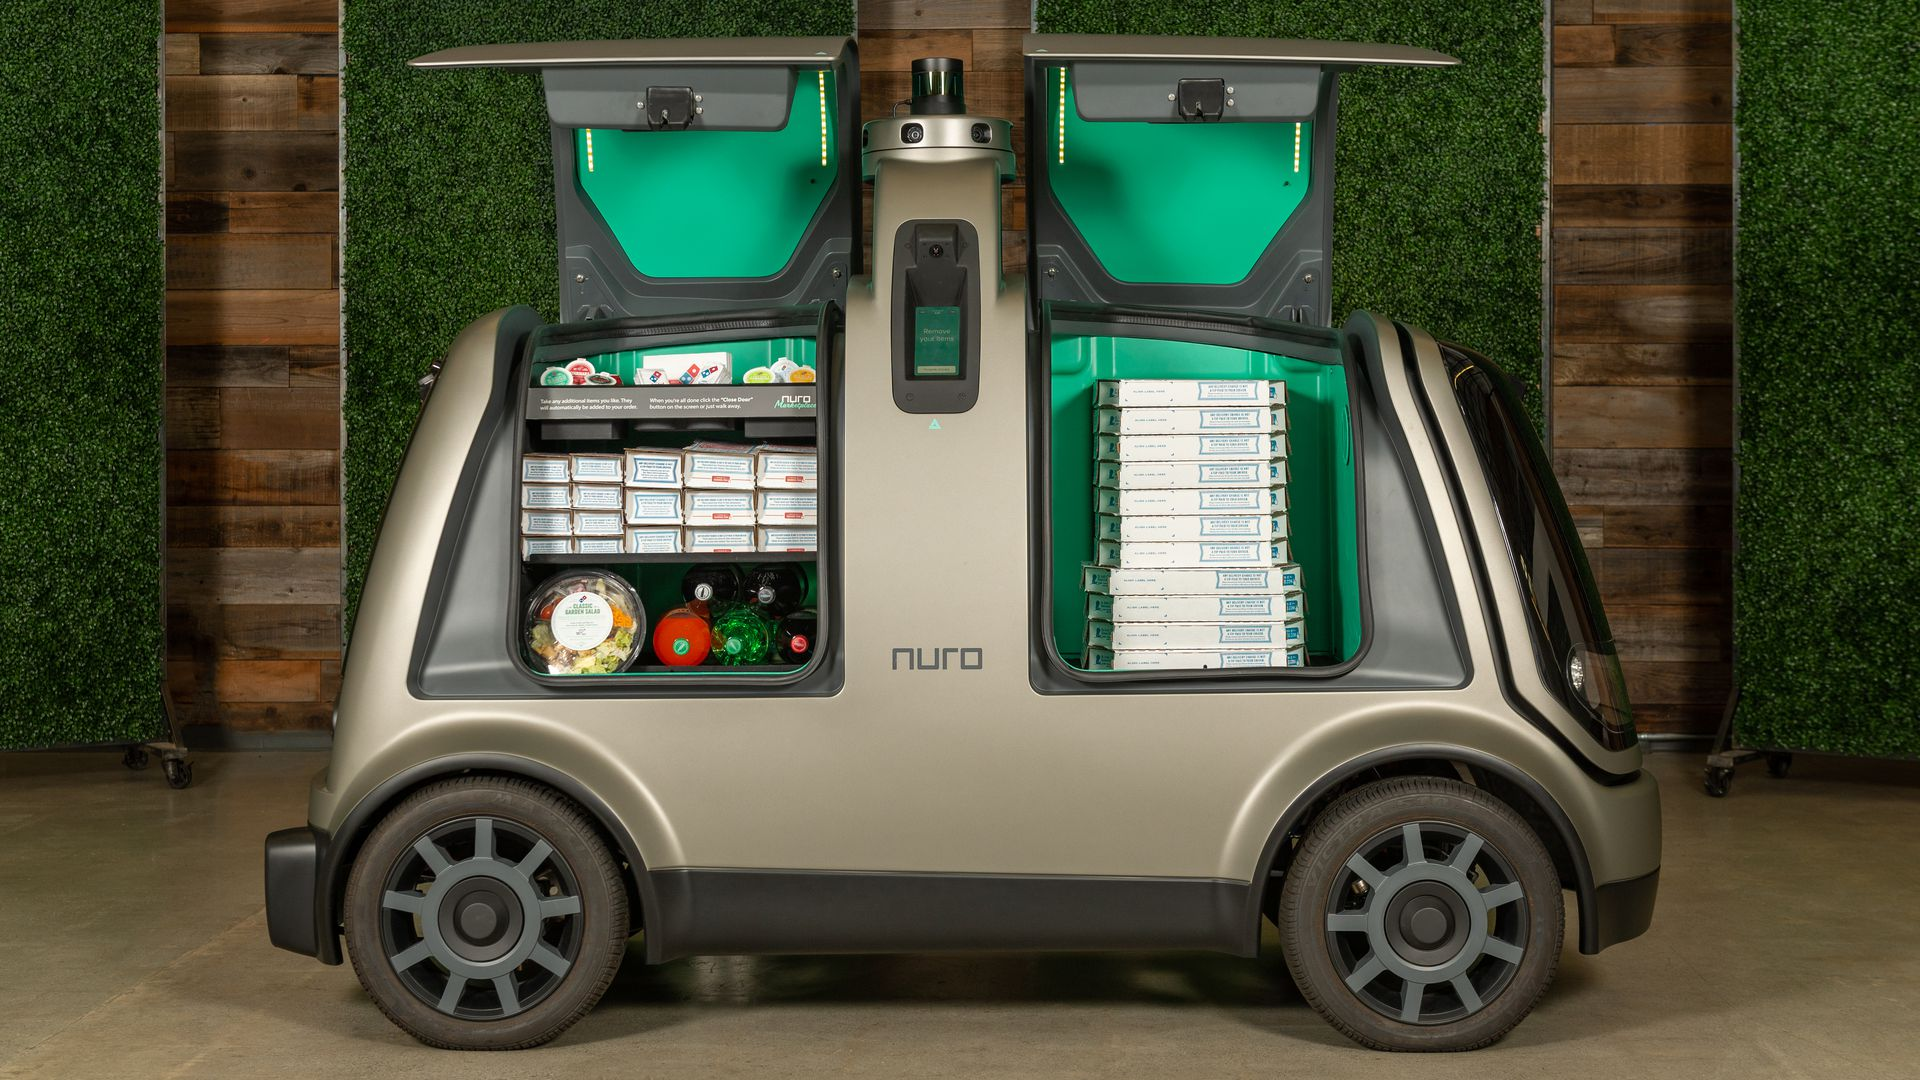 Nuro self driving vehicle with Domino's pizzas in it